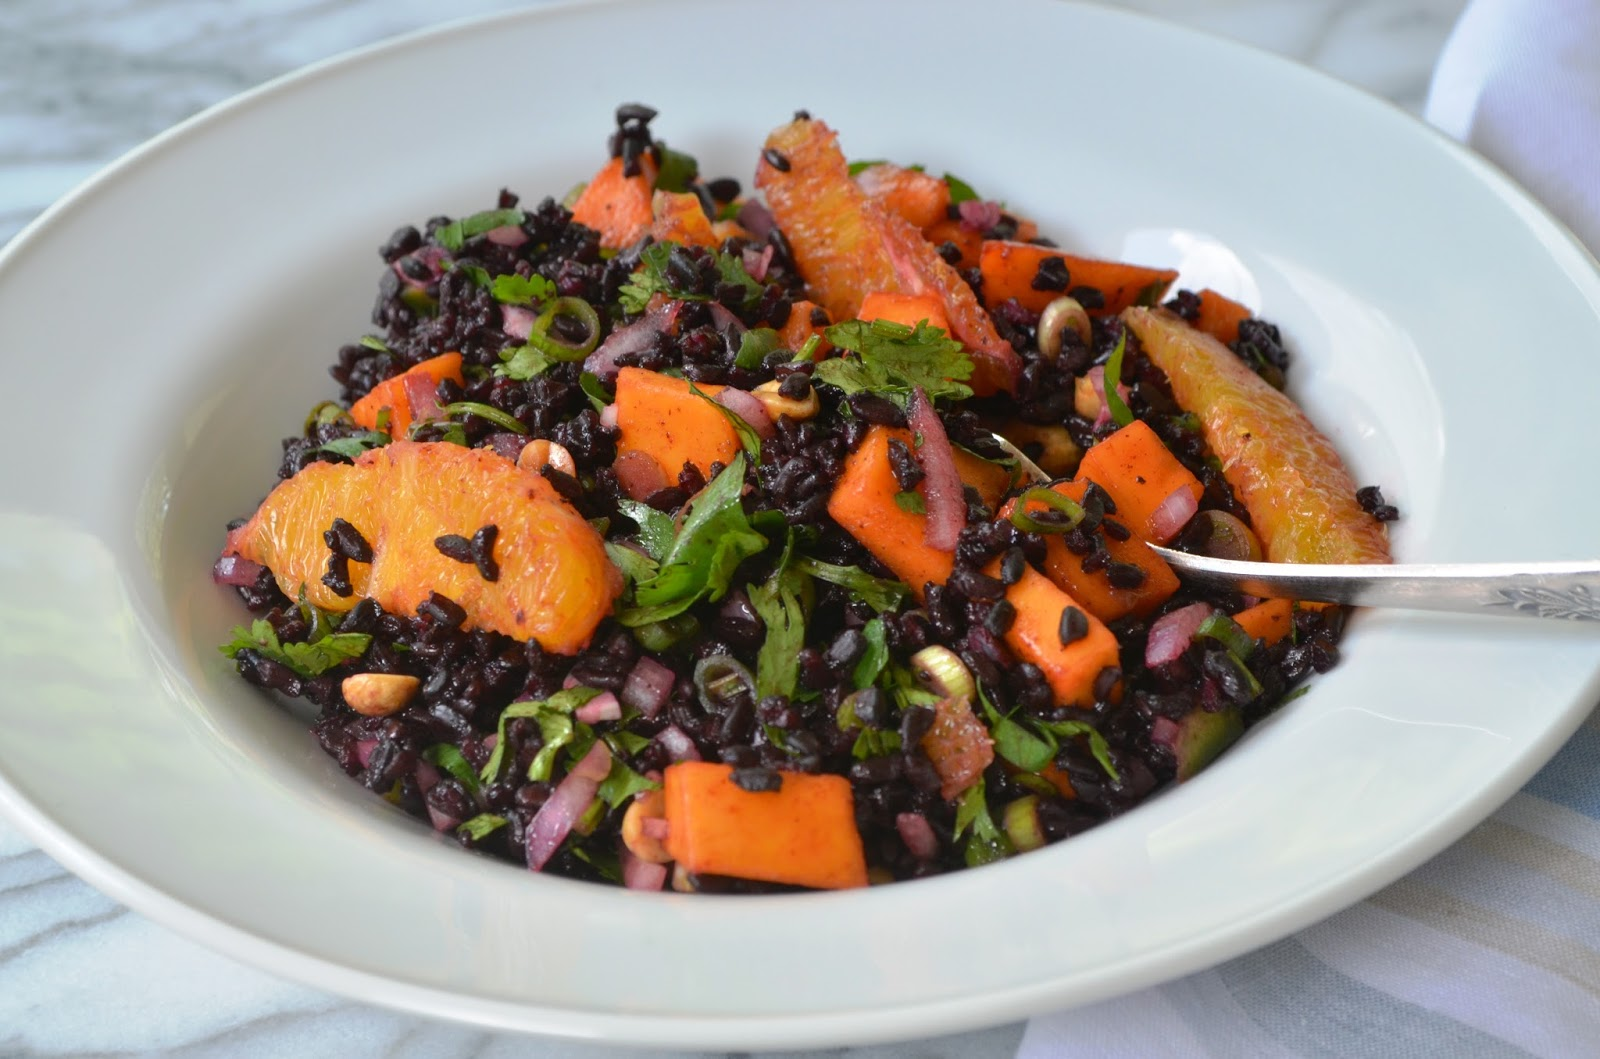 ... recipes and great photos.: Black Rice Salad with Mango and Peanuts